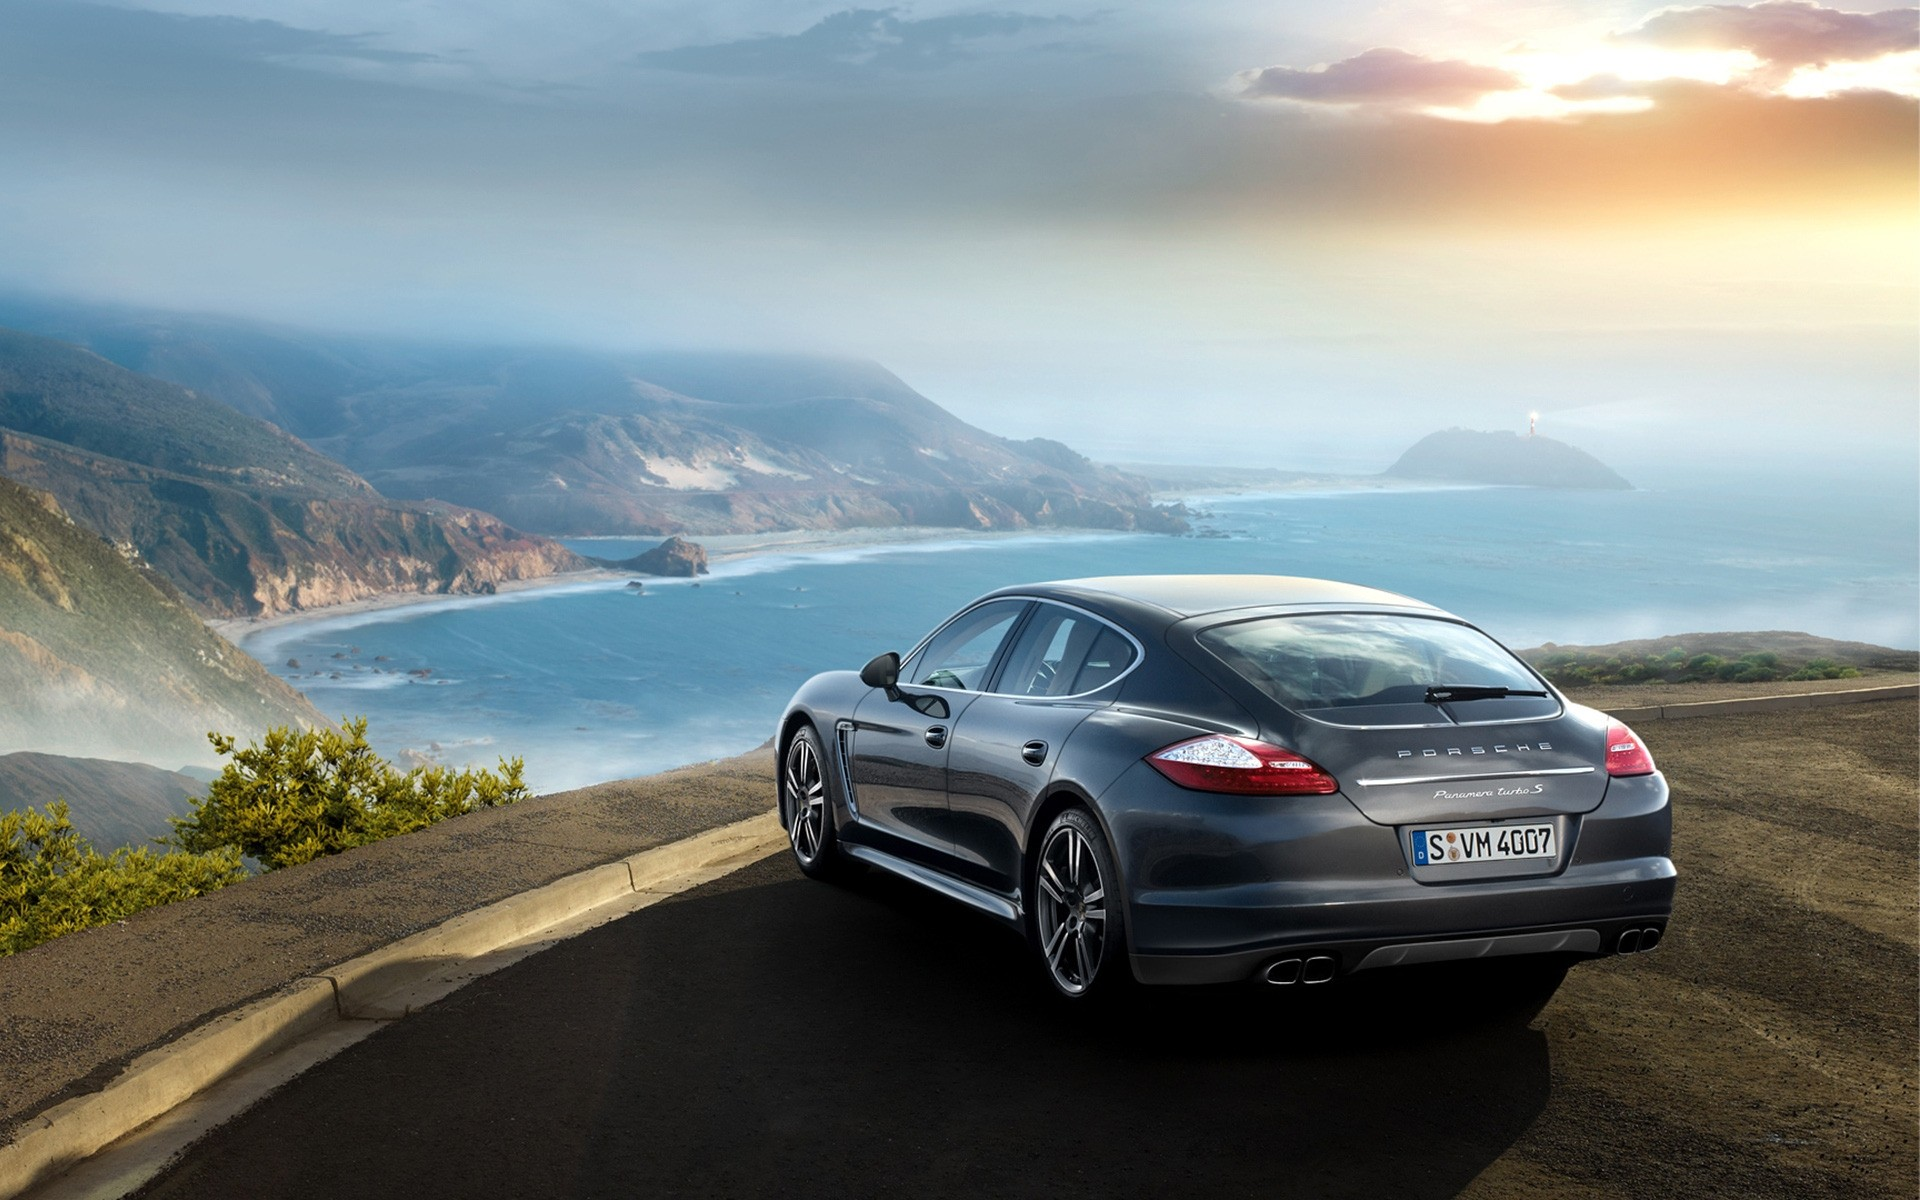 Porsche Car Travel Asphalt Beach Road Vehicle Sky Landscape Sea Ocean  Blacktop Water Noon Seashore